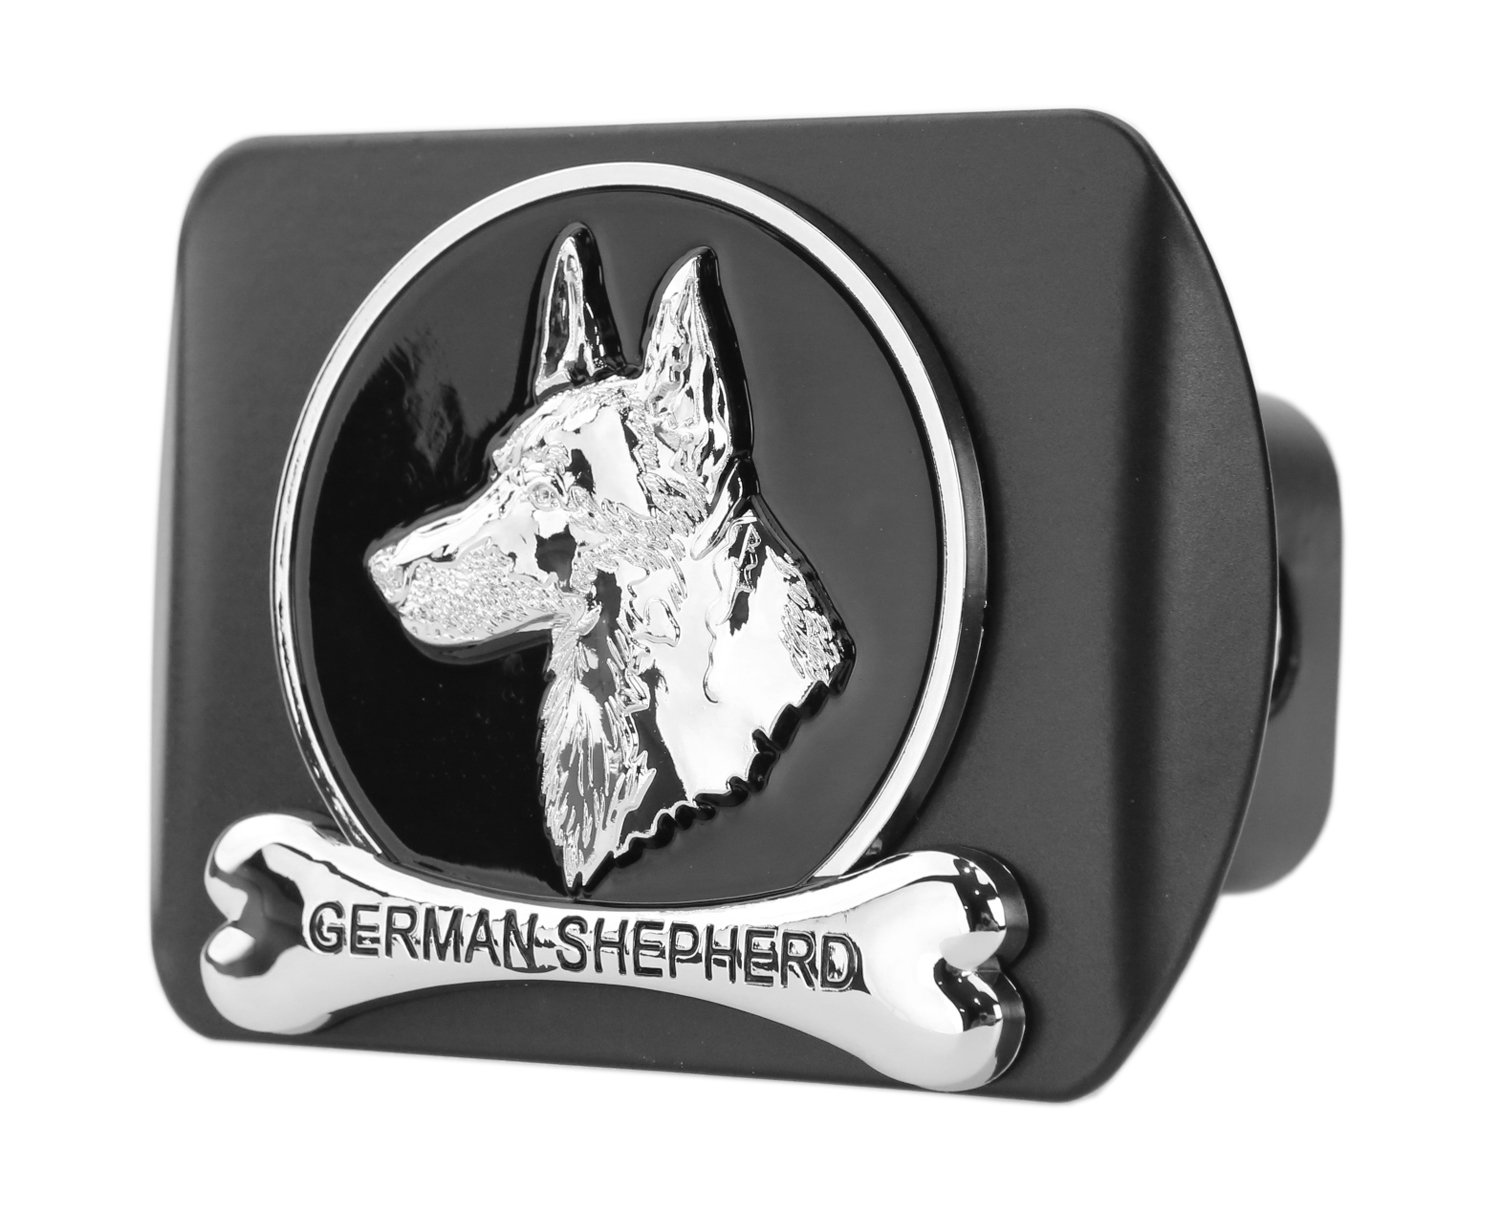 Dog Chrome 3D Badge Emblem Metal Trailer Hitch Cover (Fits 2' Receiver, German Shepherd) eVerHITCH